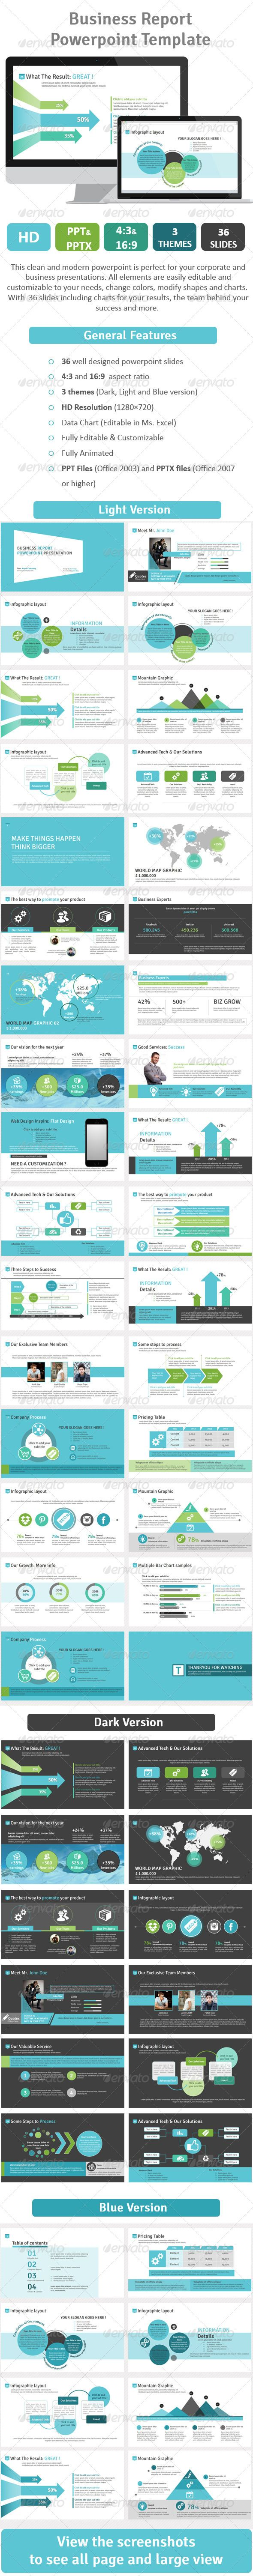 Business Report Powerpoint Template Vol.2 (Powerpoint Templates) #Powerpoint #Powerpoint_Template #Presentation